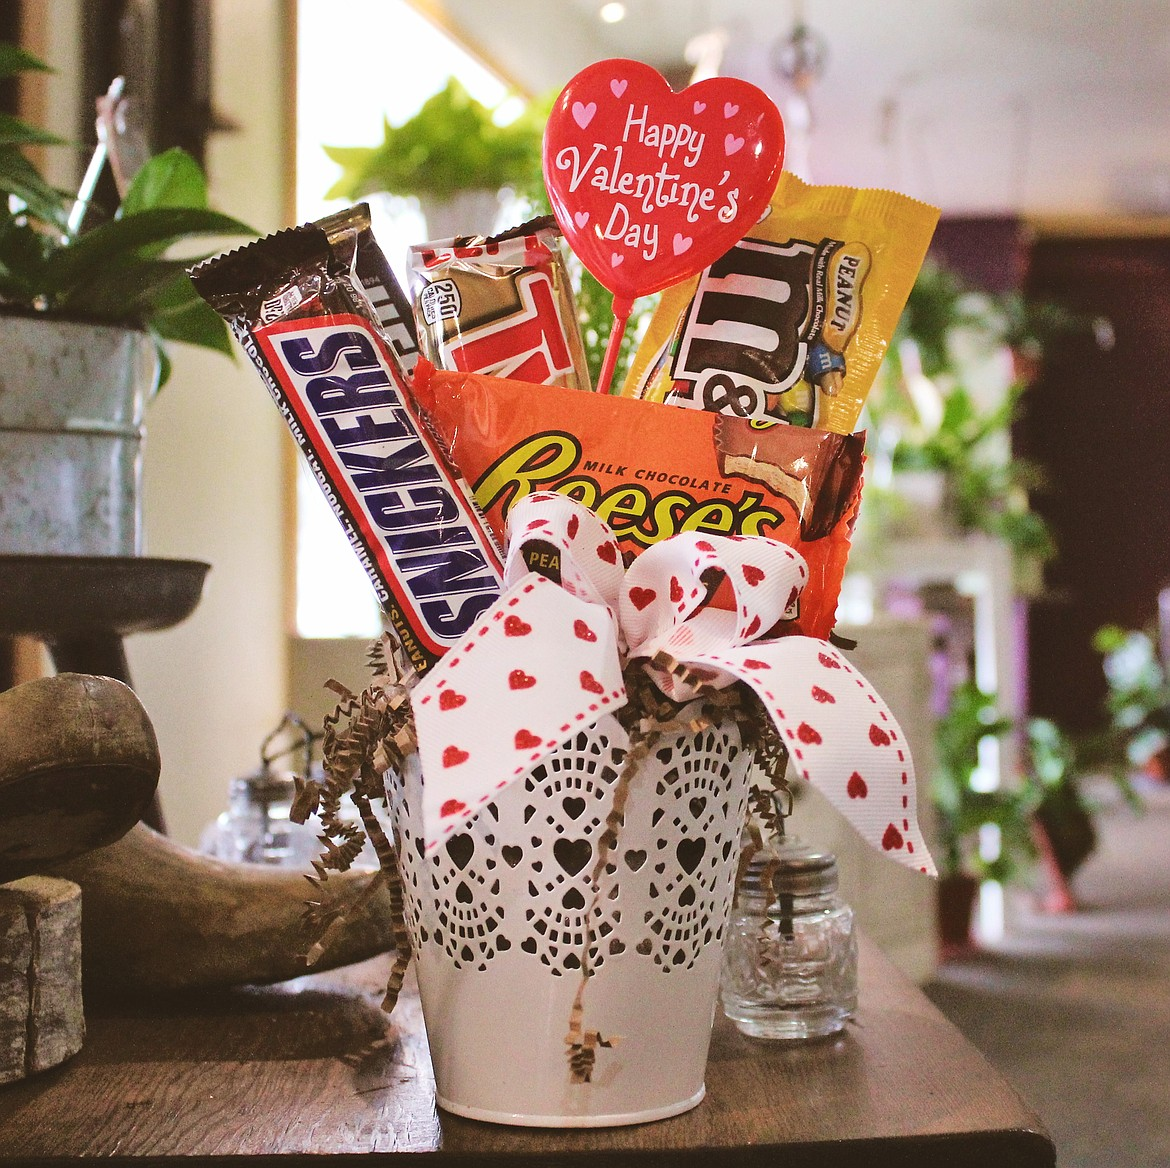 Photo by TONIA BROOKS A candy gram awaits its Valentine's Day recipient at Sugar Plum Floral.